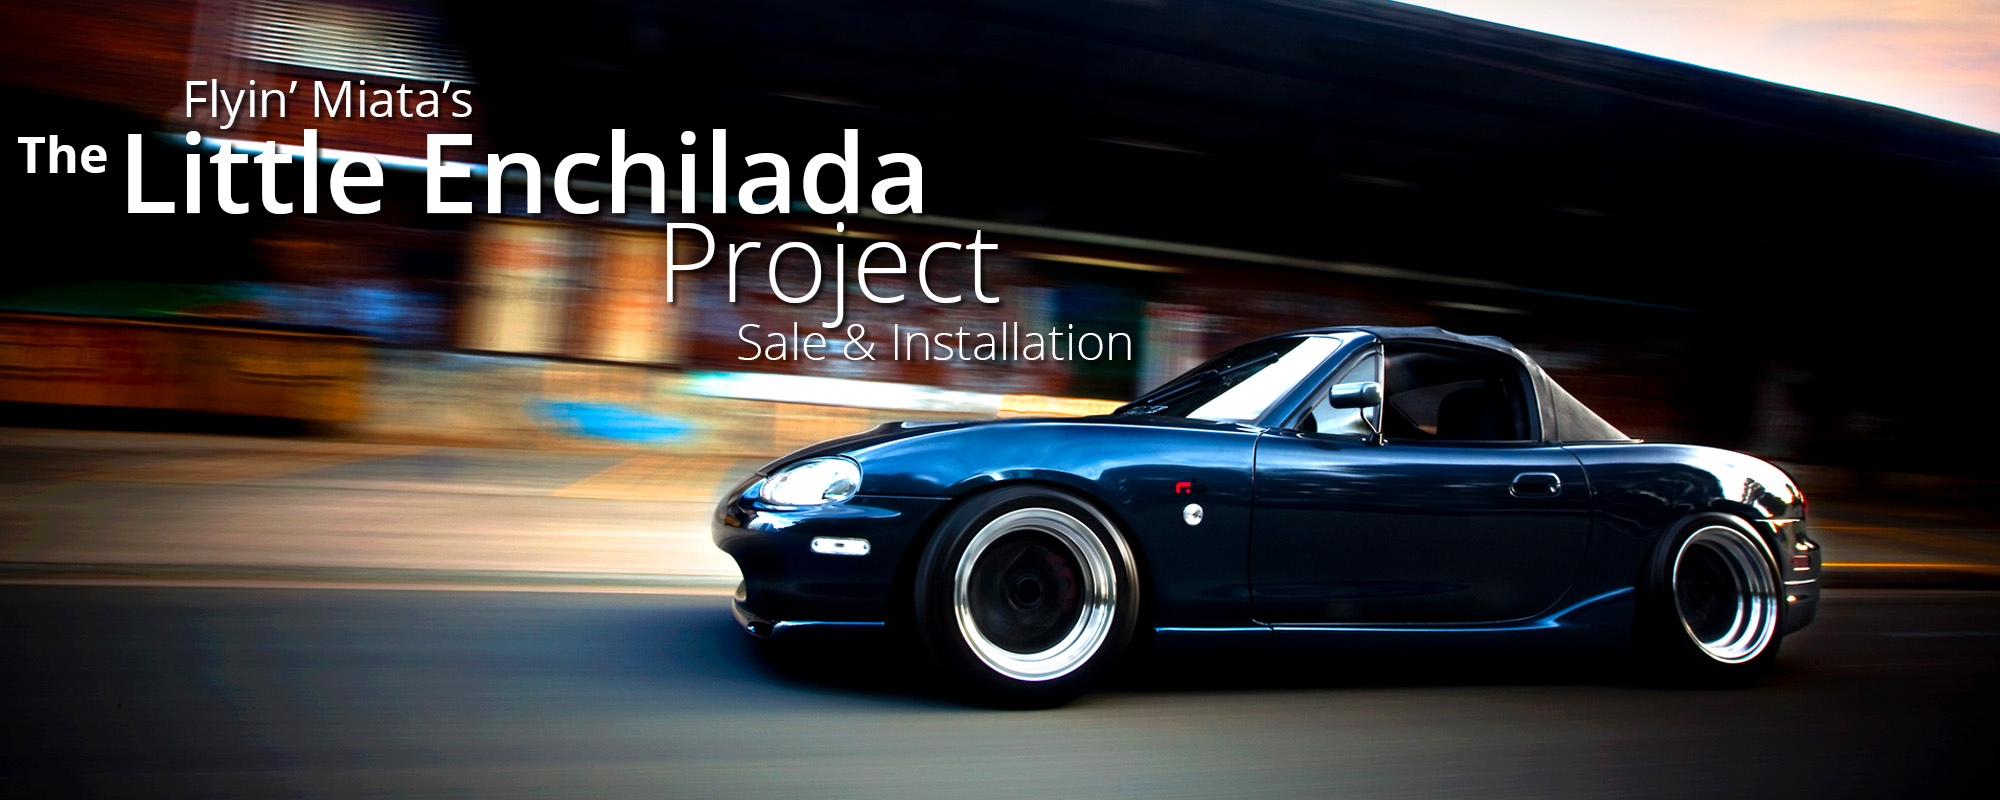 The Little Enchilada Project <a href='miata-specialists.php#tlep'>Read more</a>.